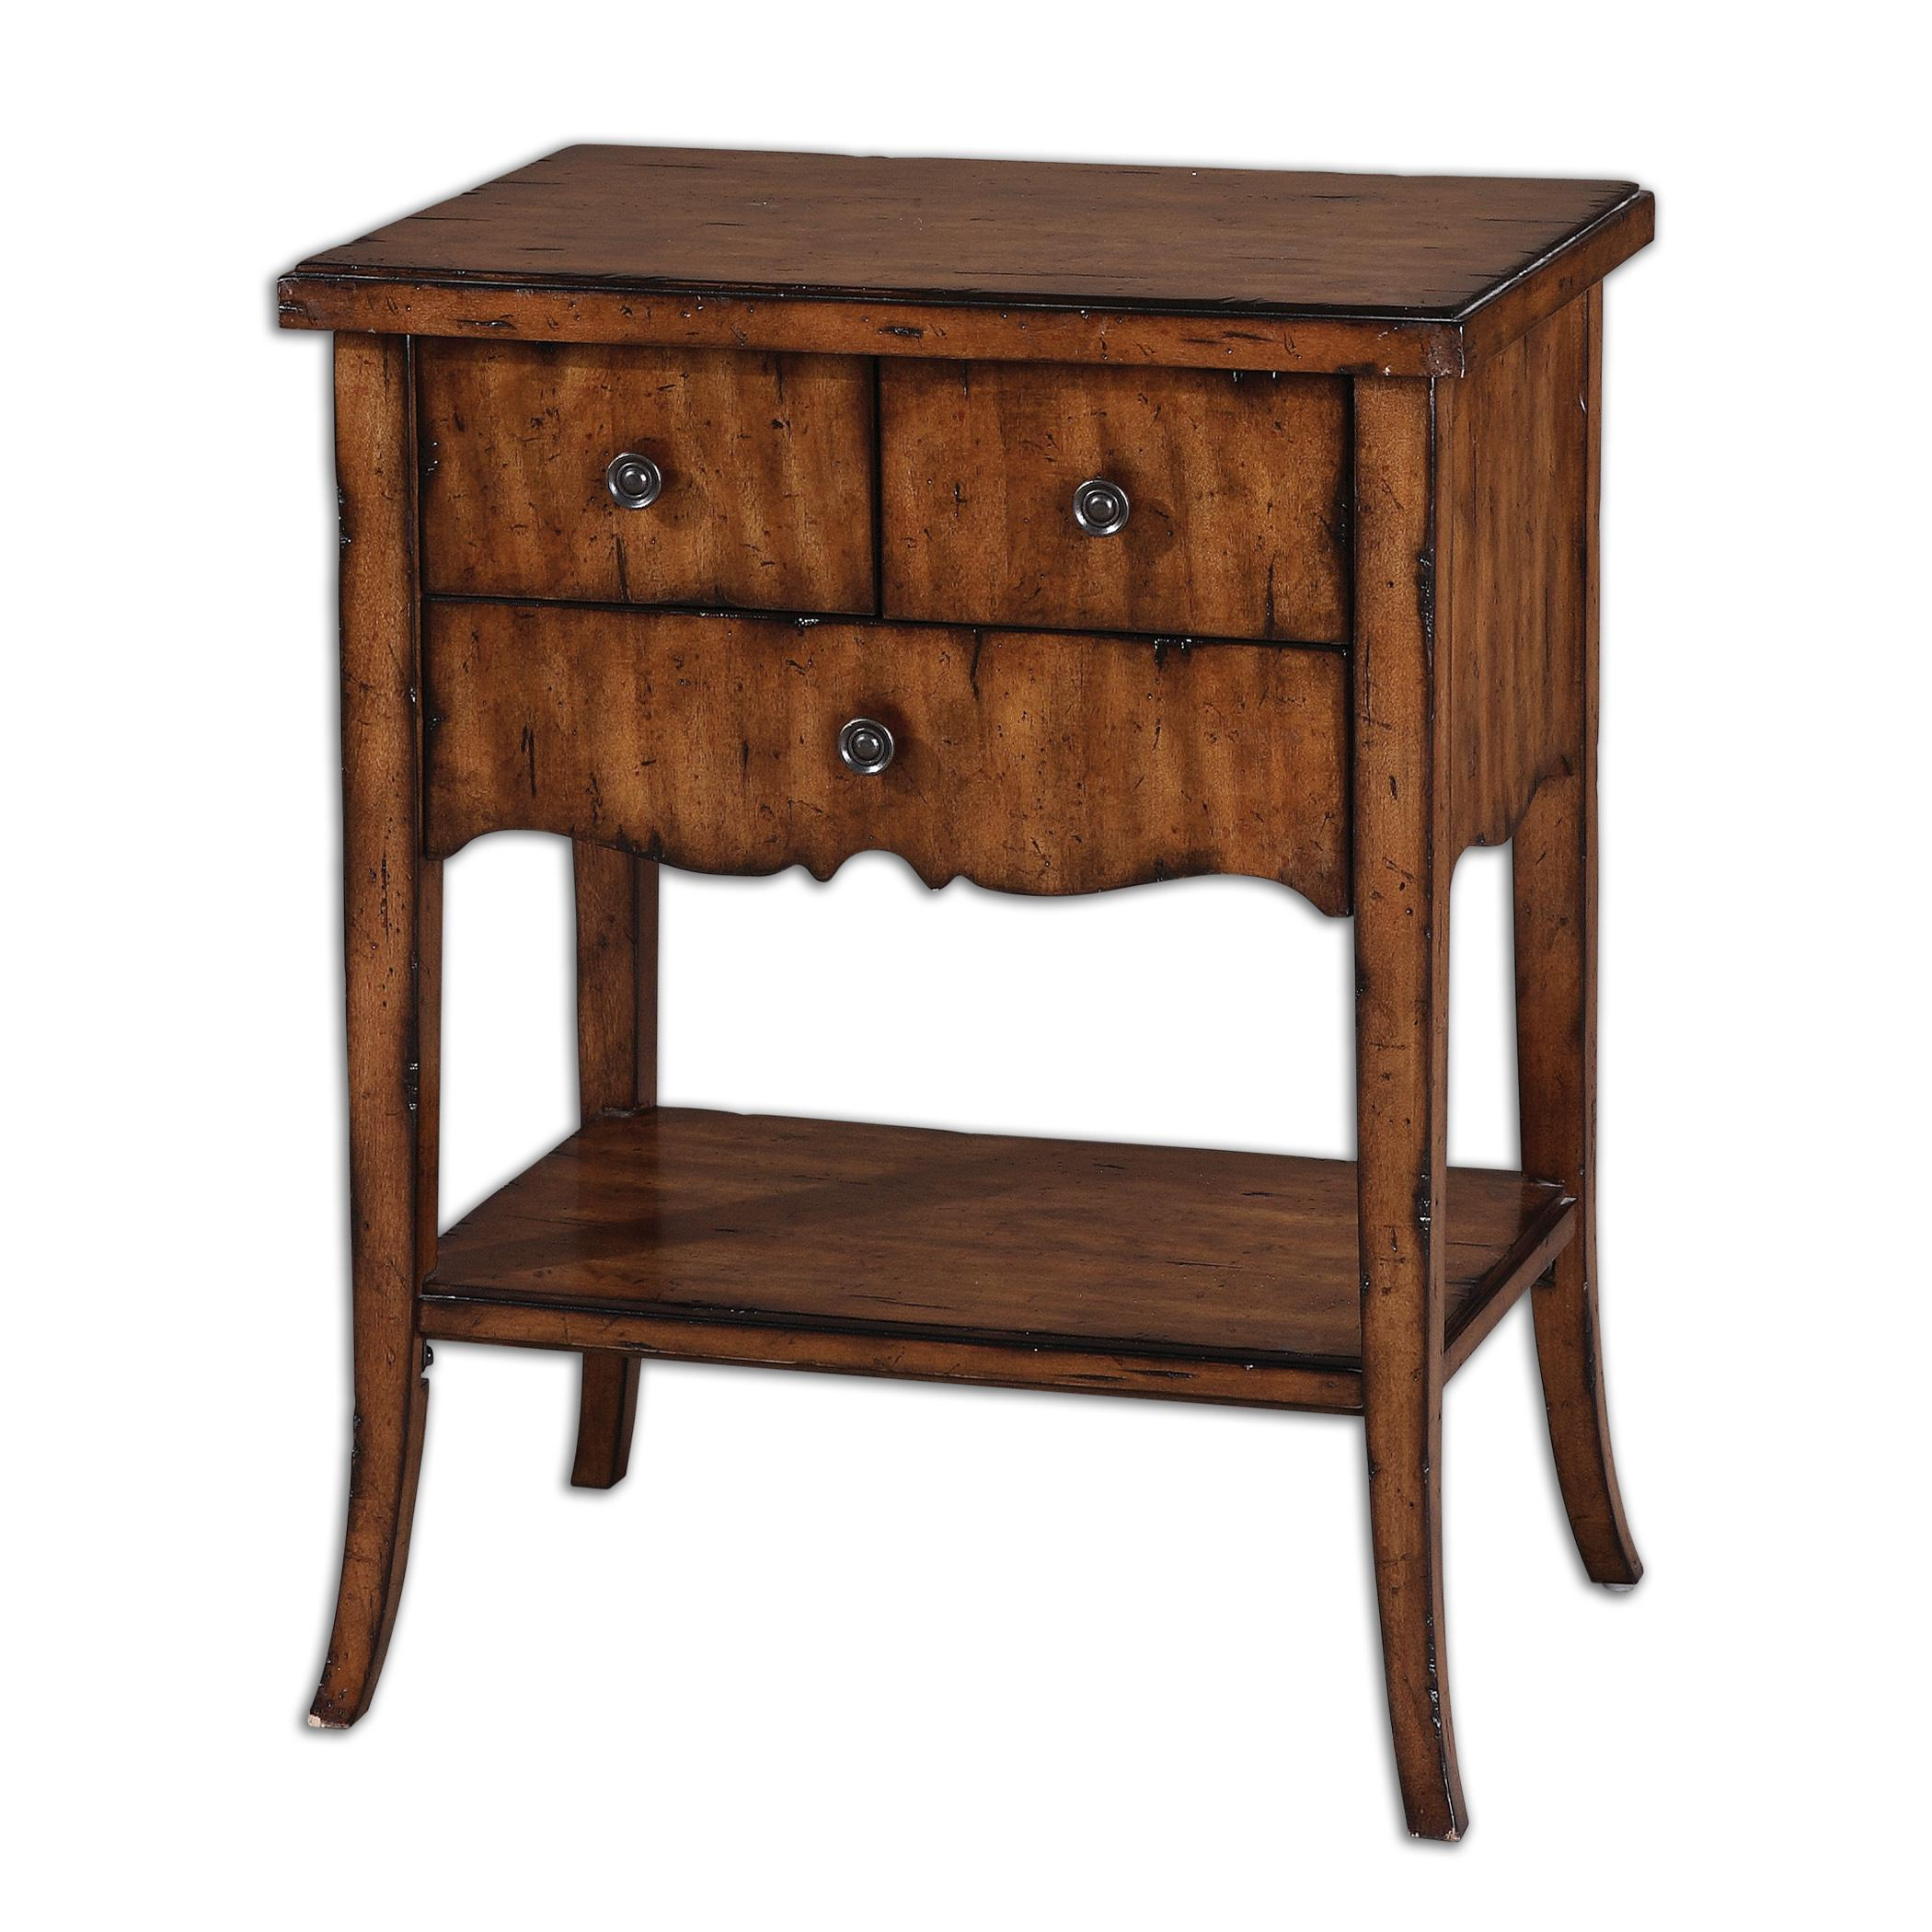 Accent Furniture - Occasional Tables Carmel End Table by Uttermost at Factory Direct Furniture